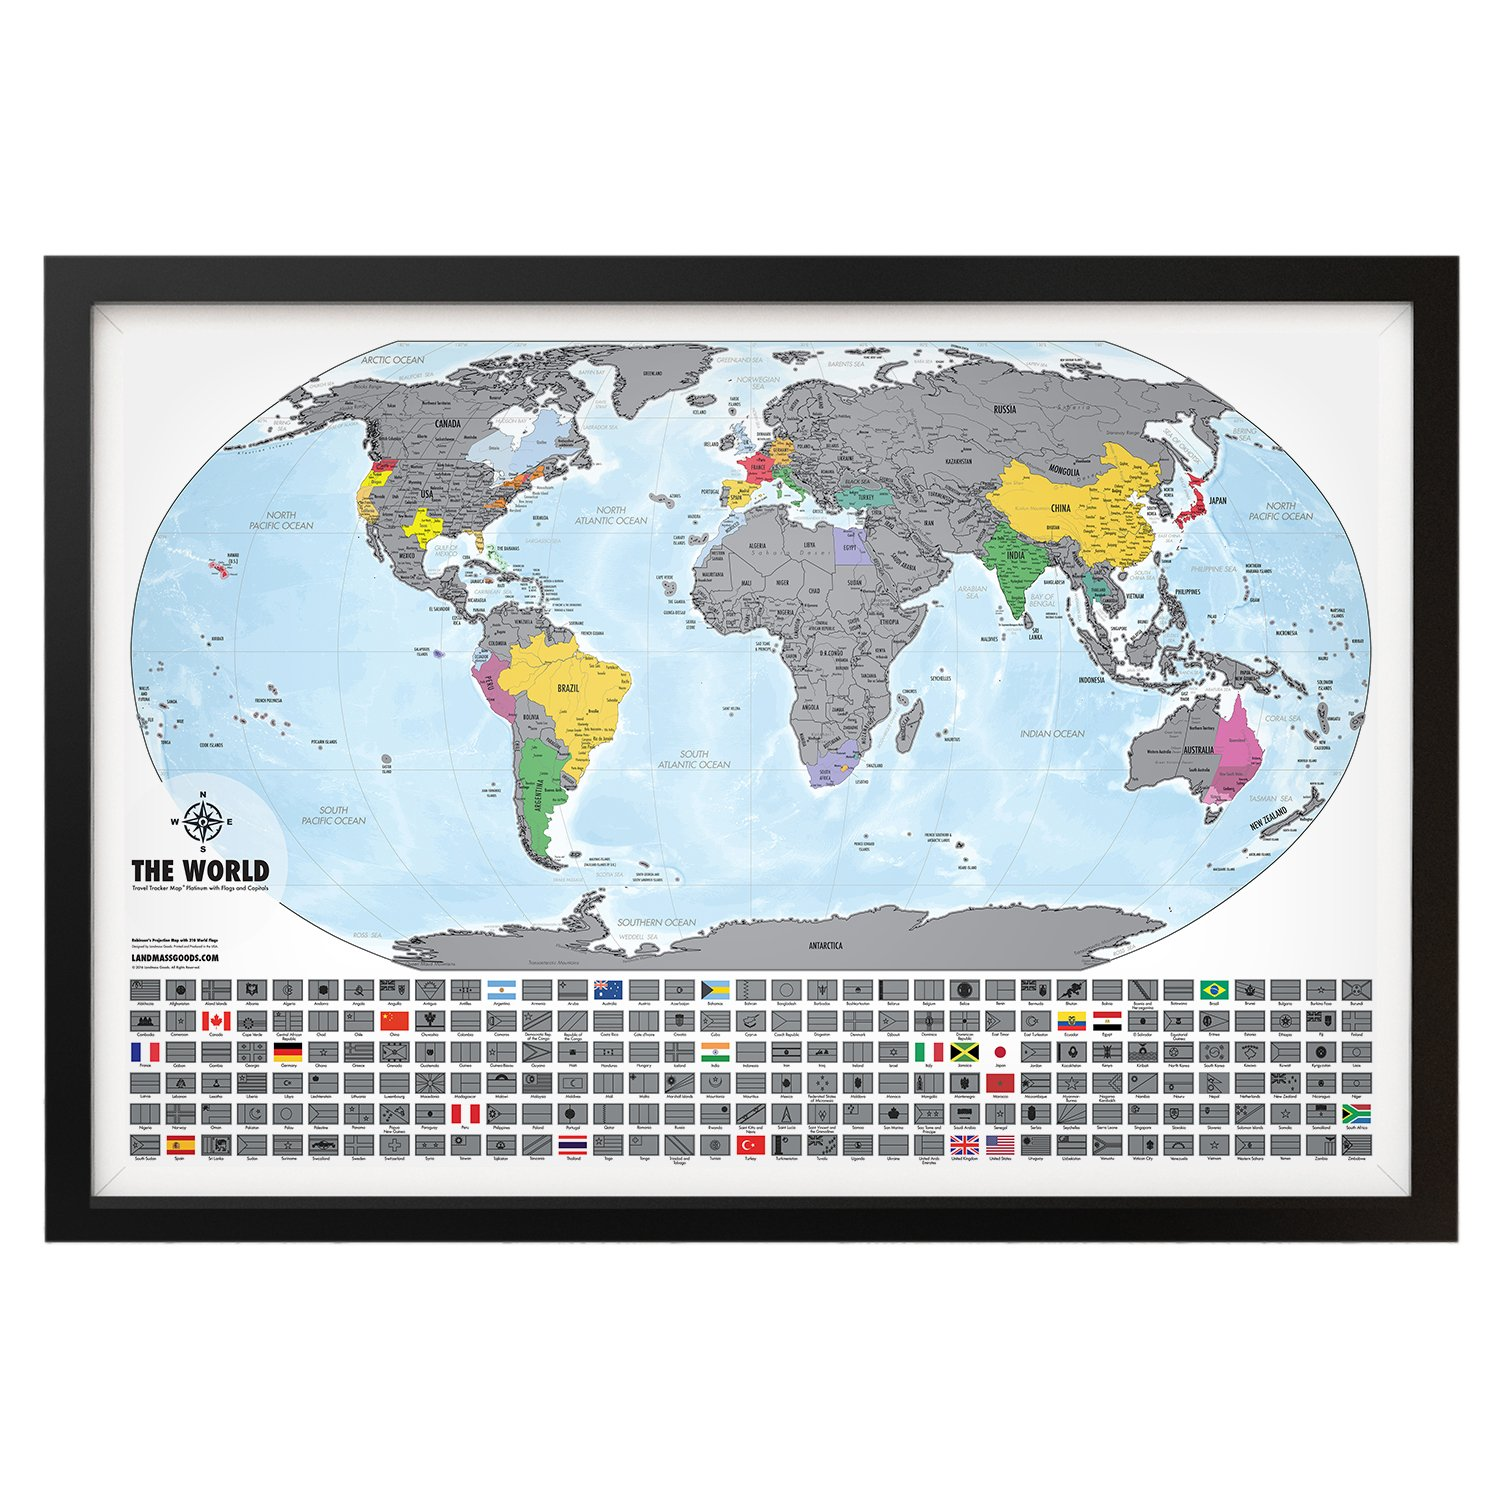 Travel tracker map platinum xl special edition map scratch off travel tracker map platinum xl special edition map scratch off where you gumiabroncs Images